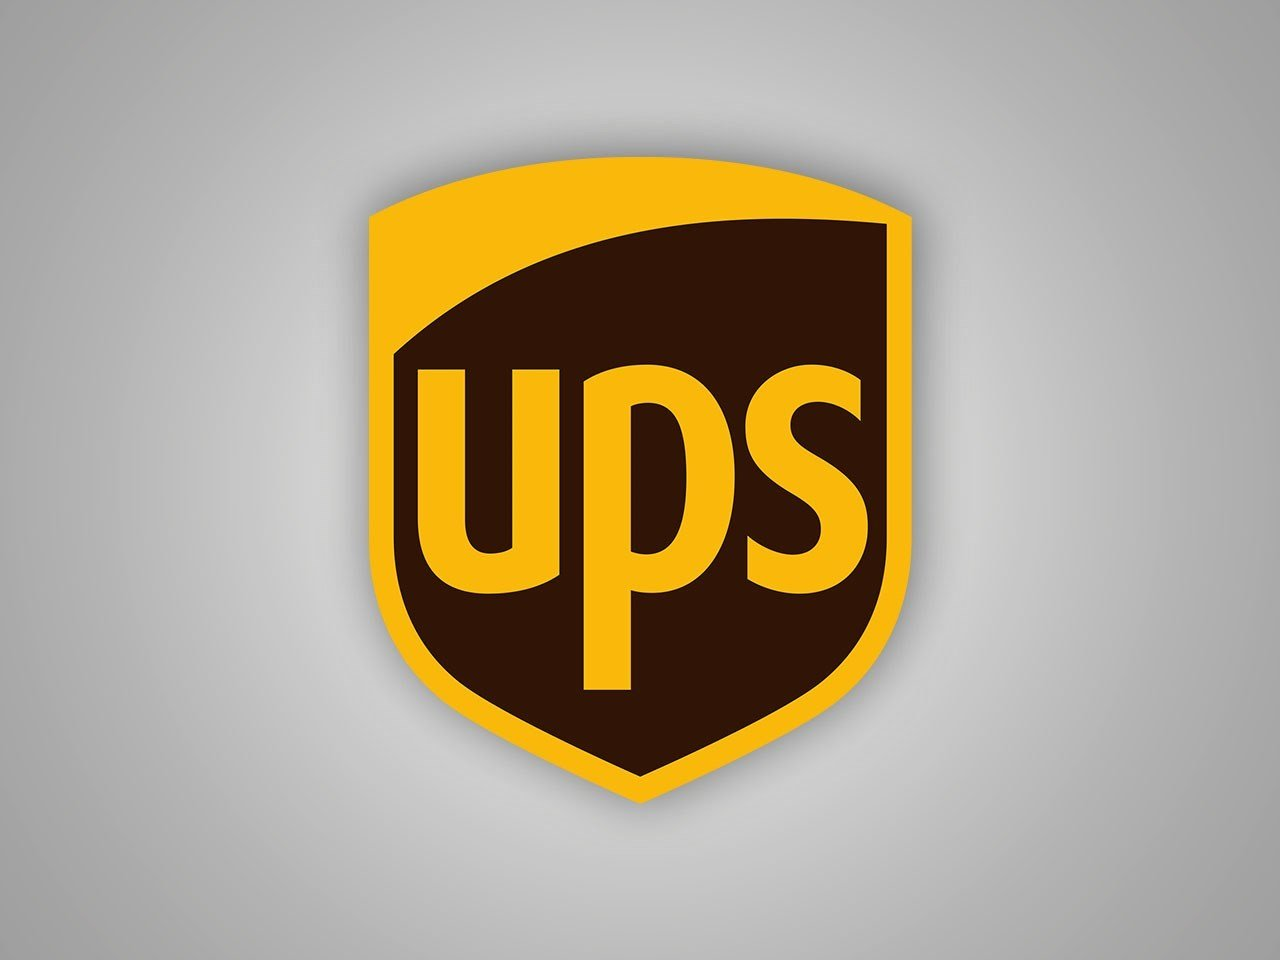 (UPS) Shares Bought by Shell Asset Management Co